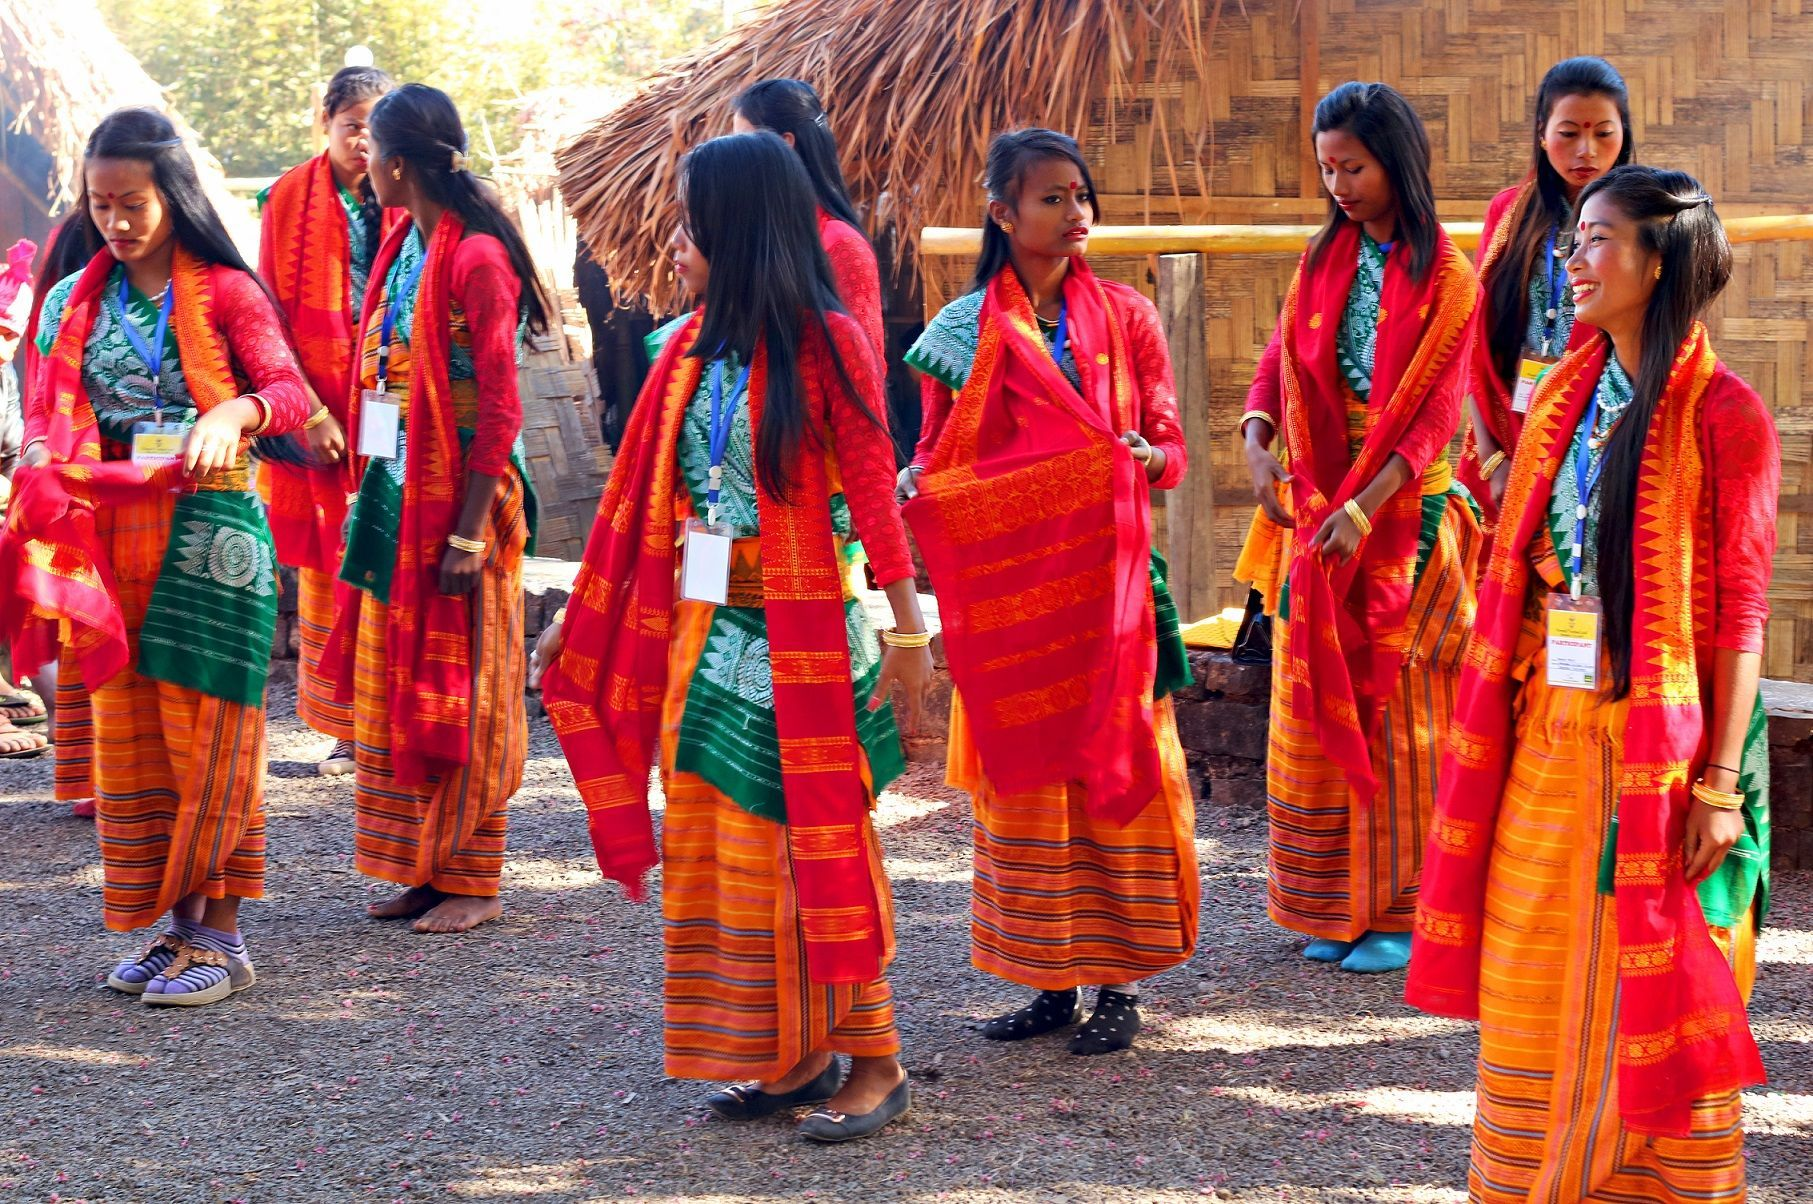 Hornbill Festival Tour Nagaland, To make merry at Hornbill festival in Nagaland, opt for our Hornbill festival tour Nagaland package. Ensure economy, safety, luxury, music, food n great company.